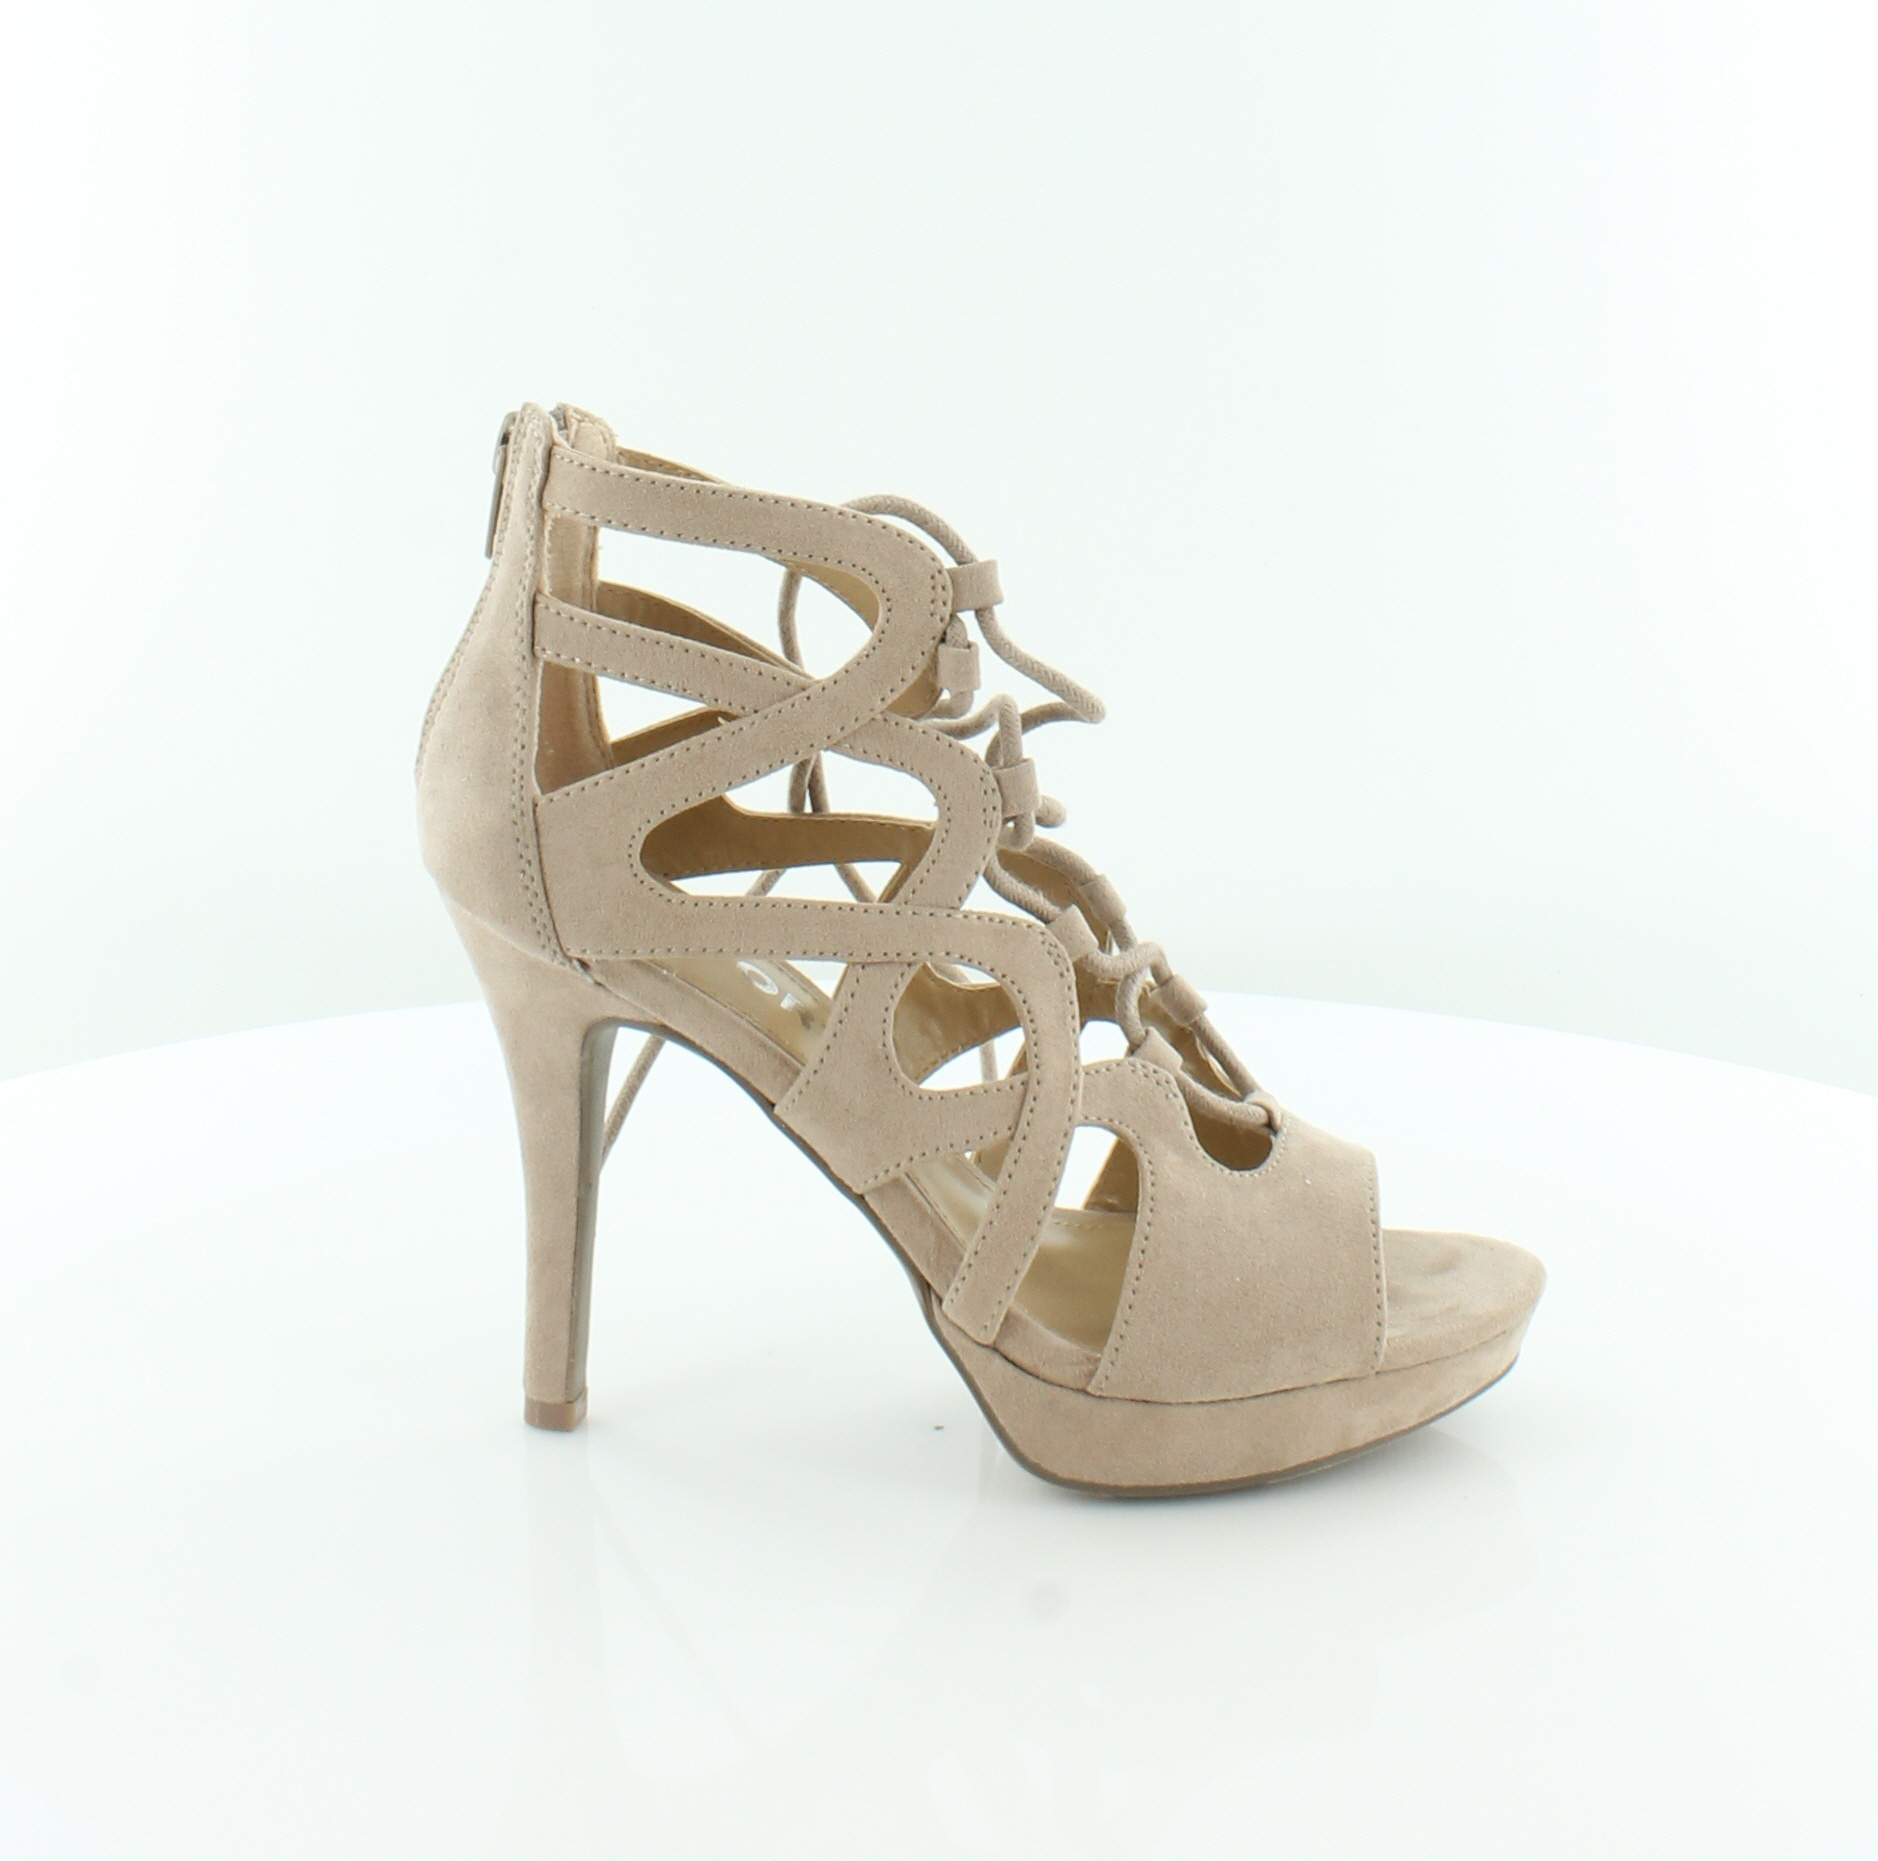 Report 6 Laxy Beige Womens Shoes Size 6 Report M Sandals MSRP $59 61a91c